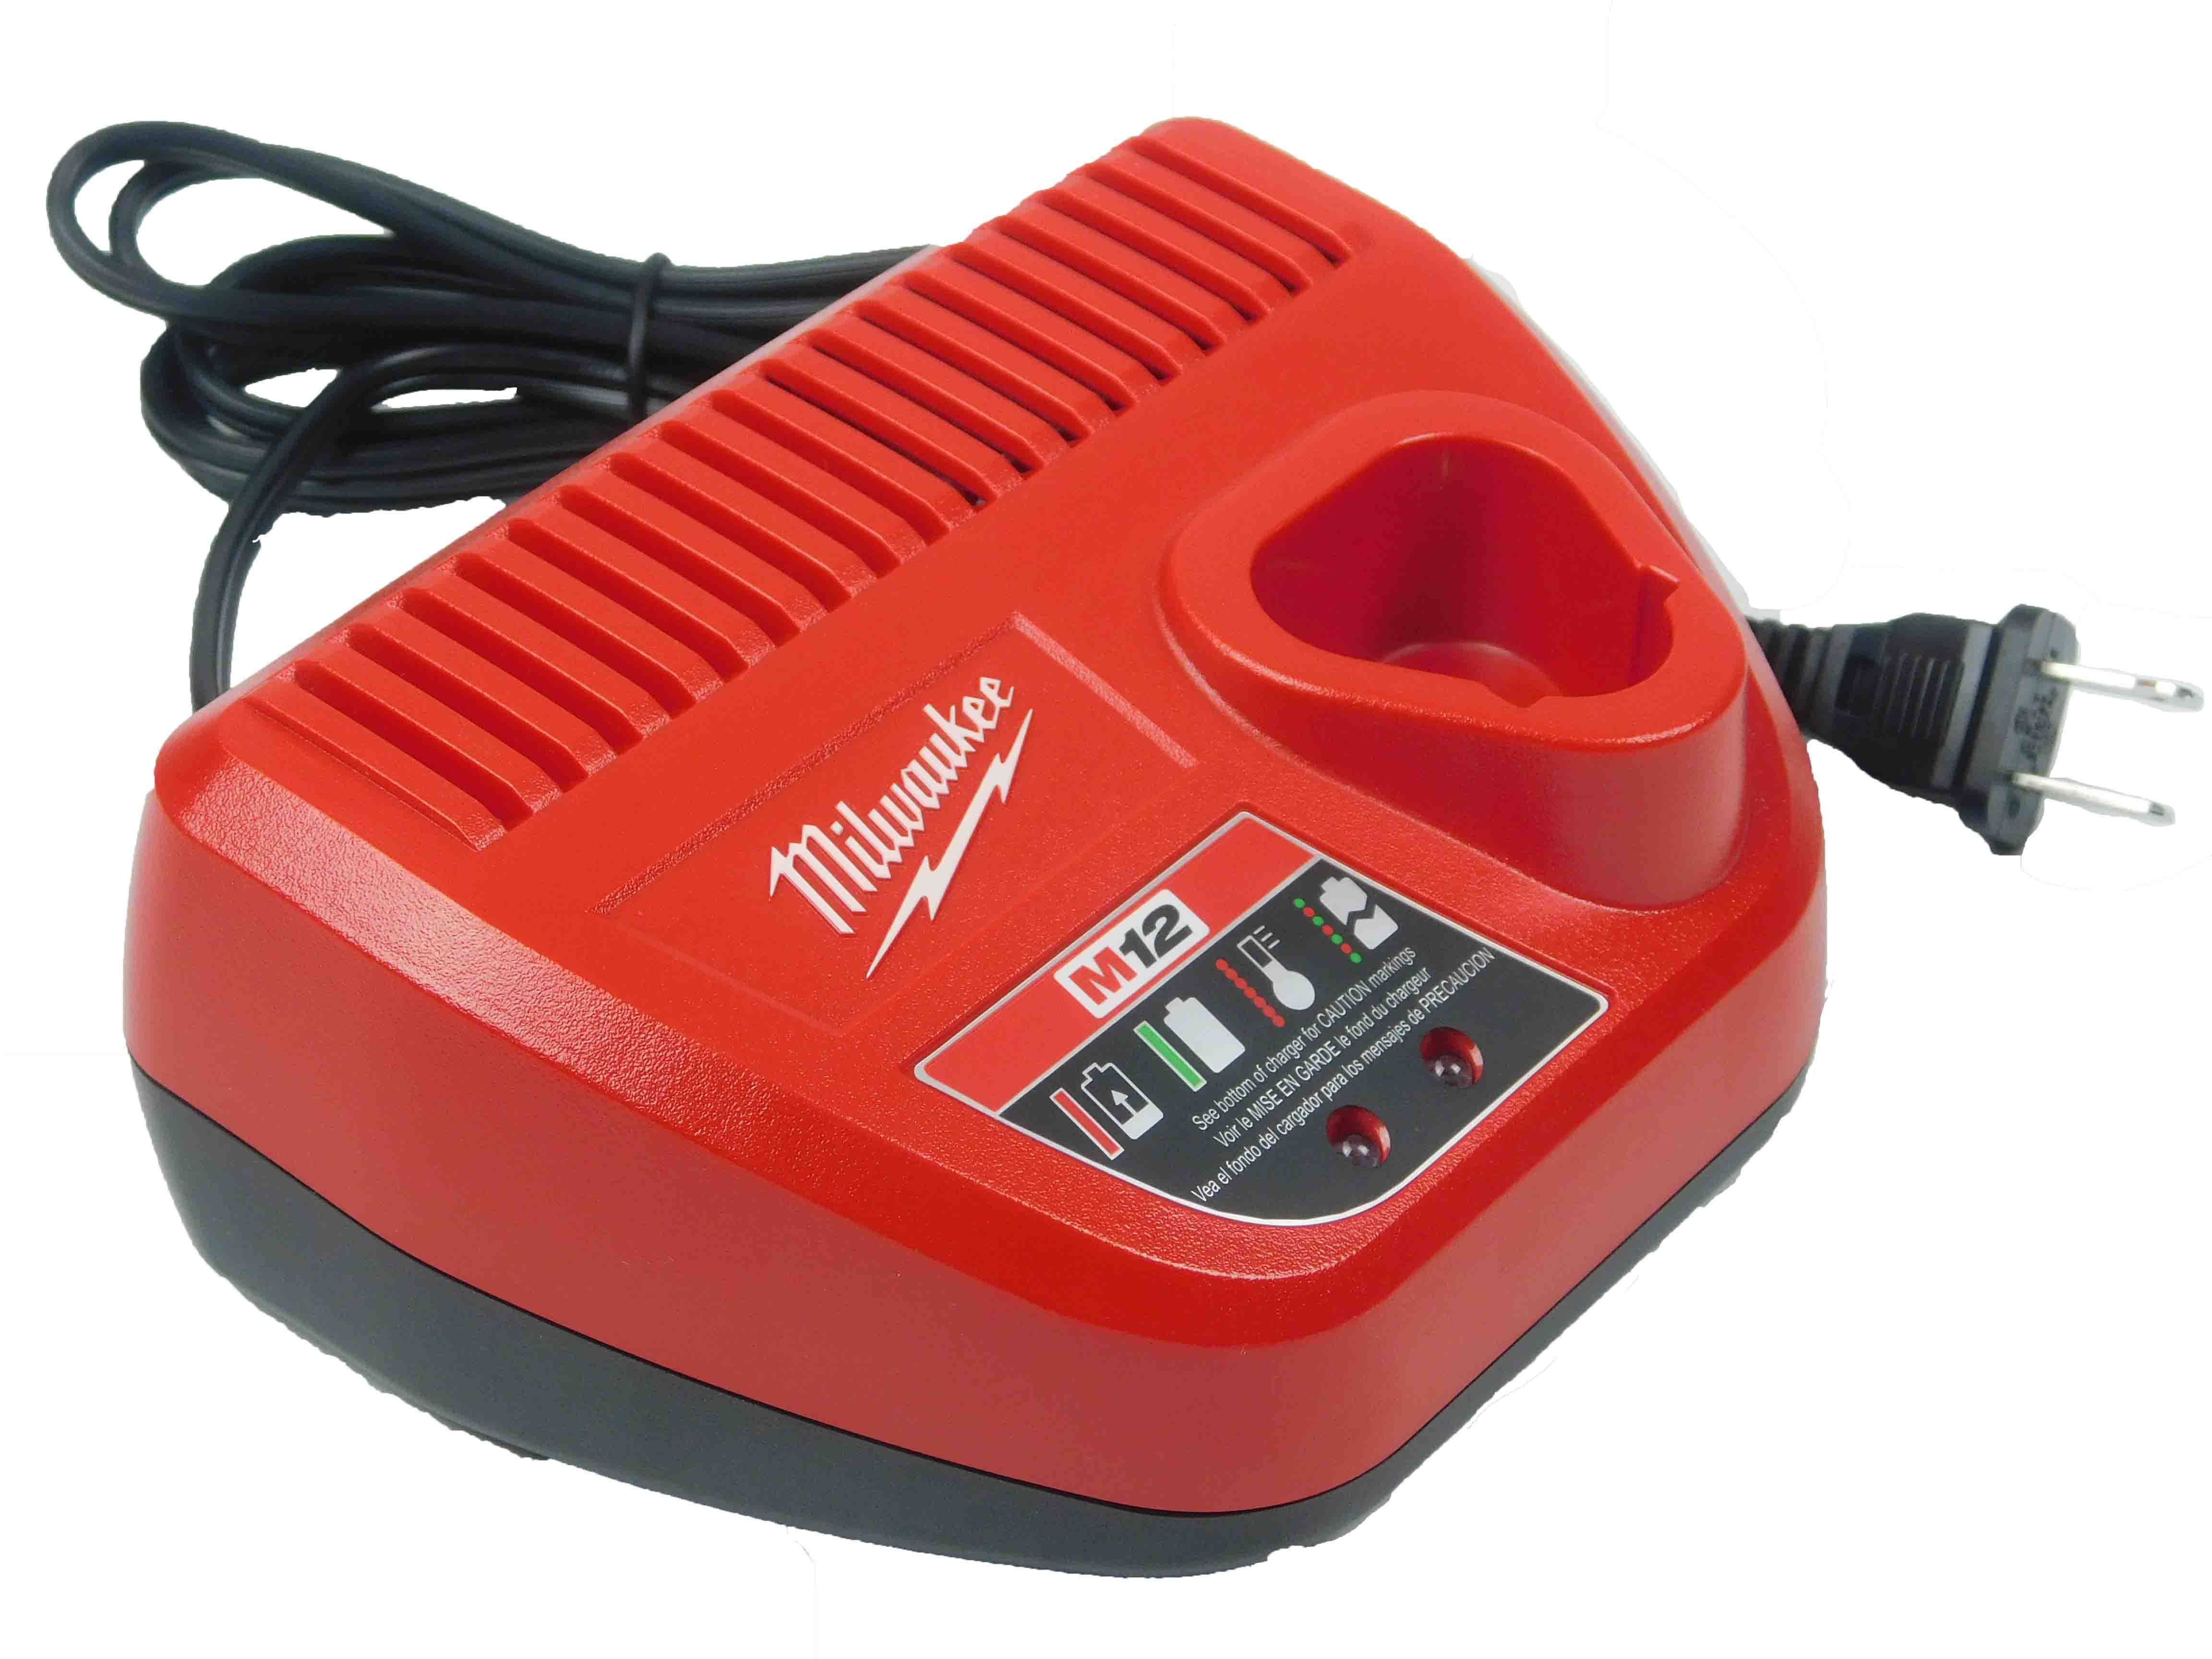 Milwaukee M12 30 Minute Ion Charger 48-59-2401